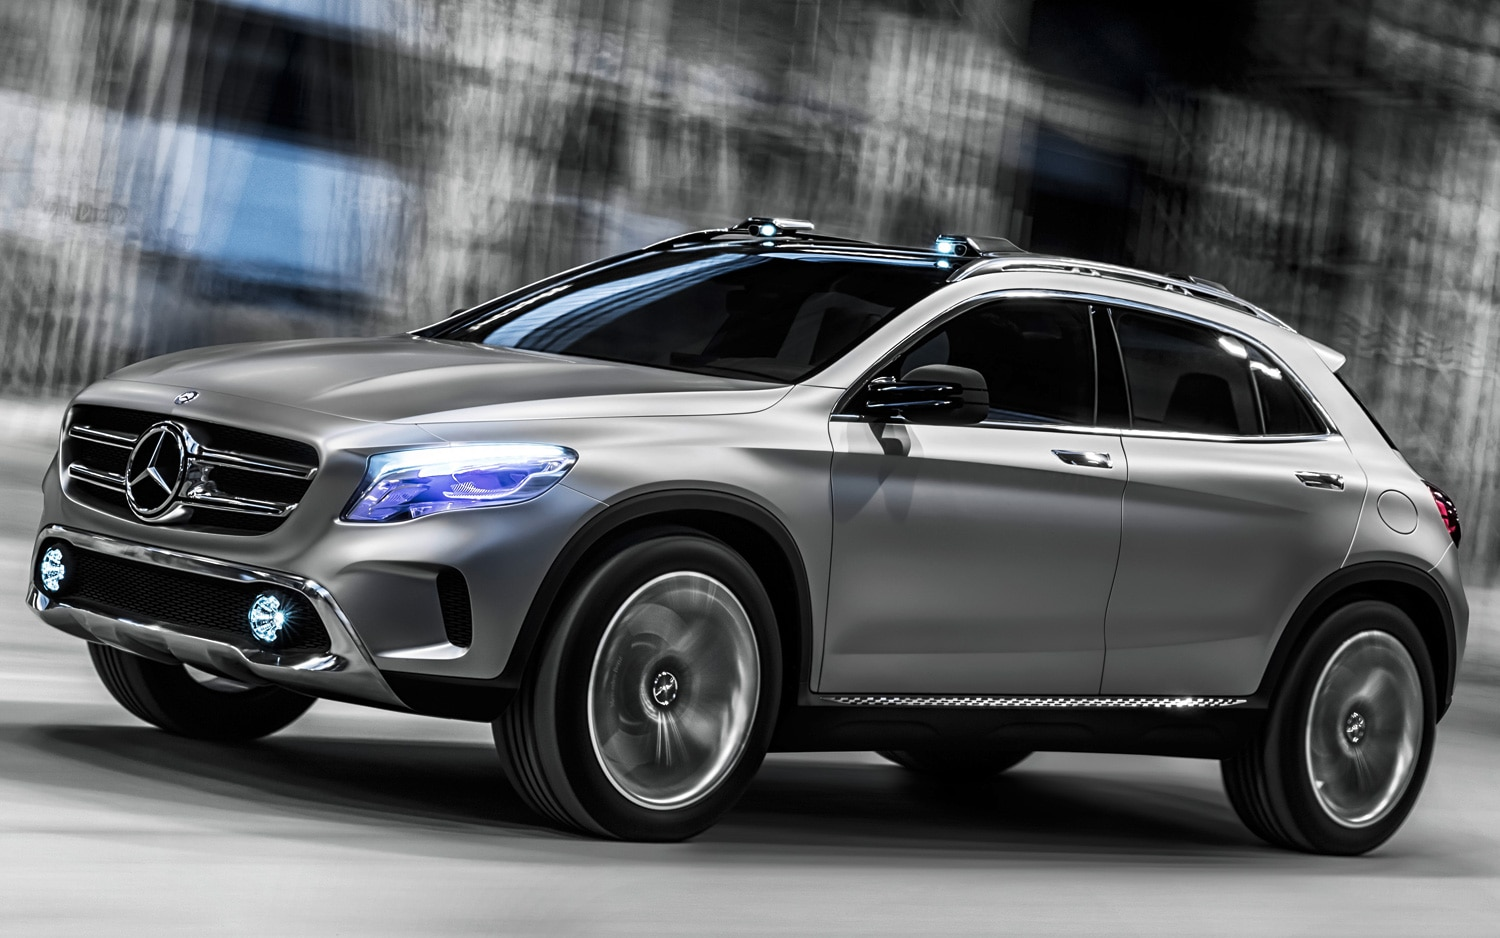 Mercedes Benz GLA Class Concept Front Three Quarters View In Motion1